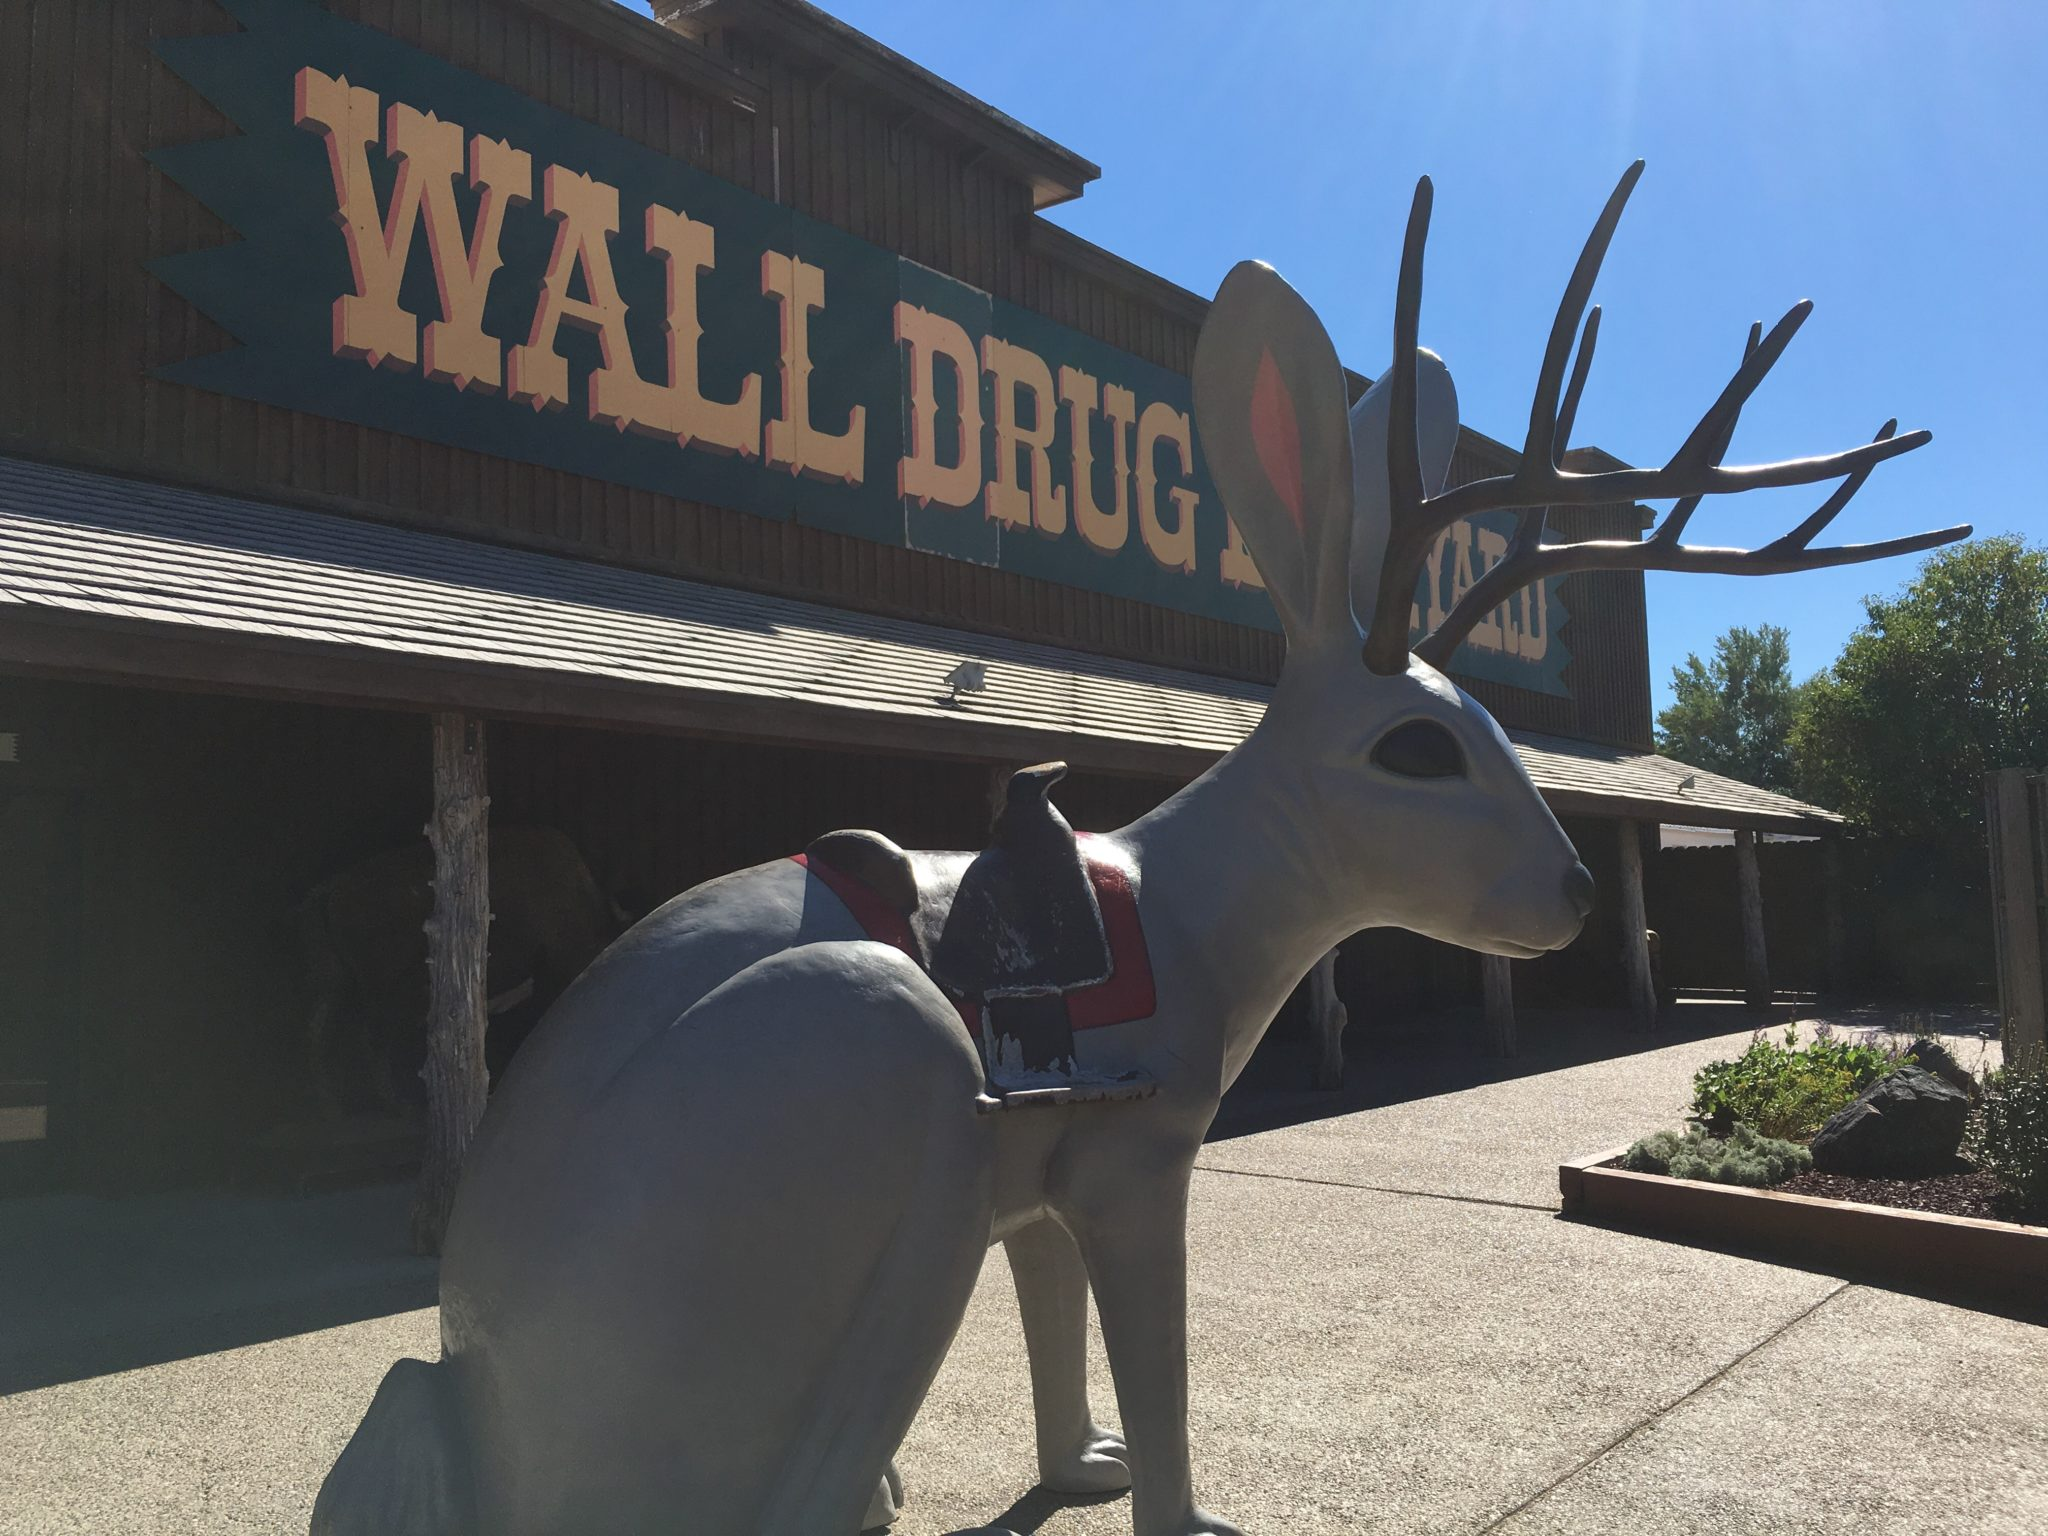 Wall Drug - Jackelope statue